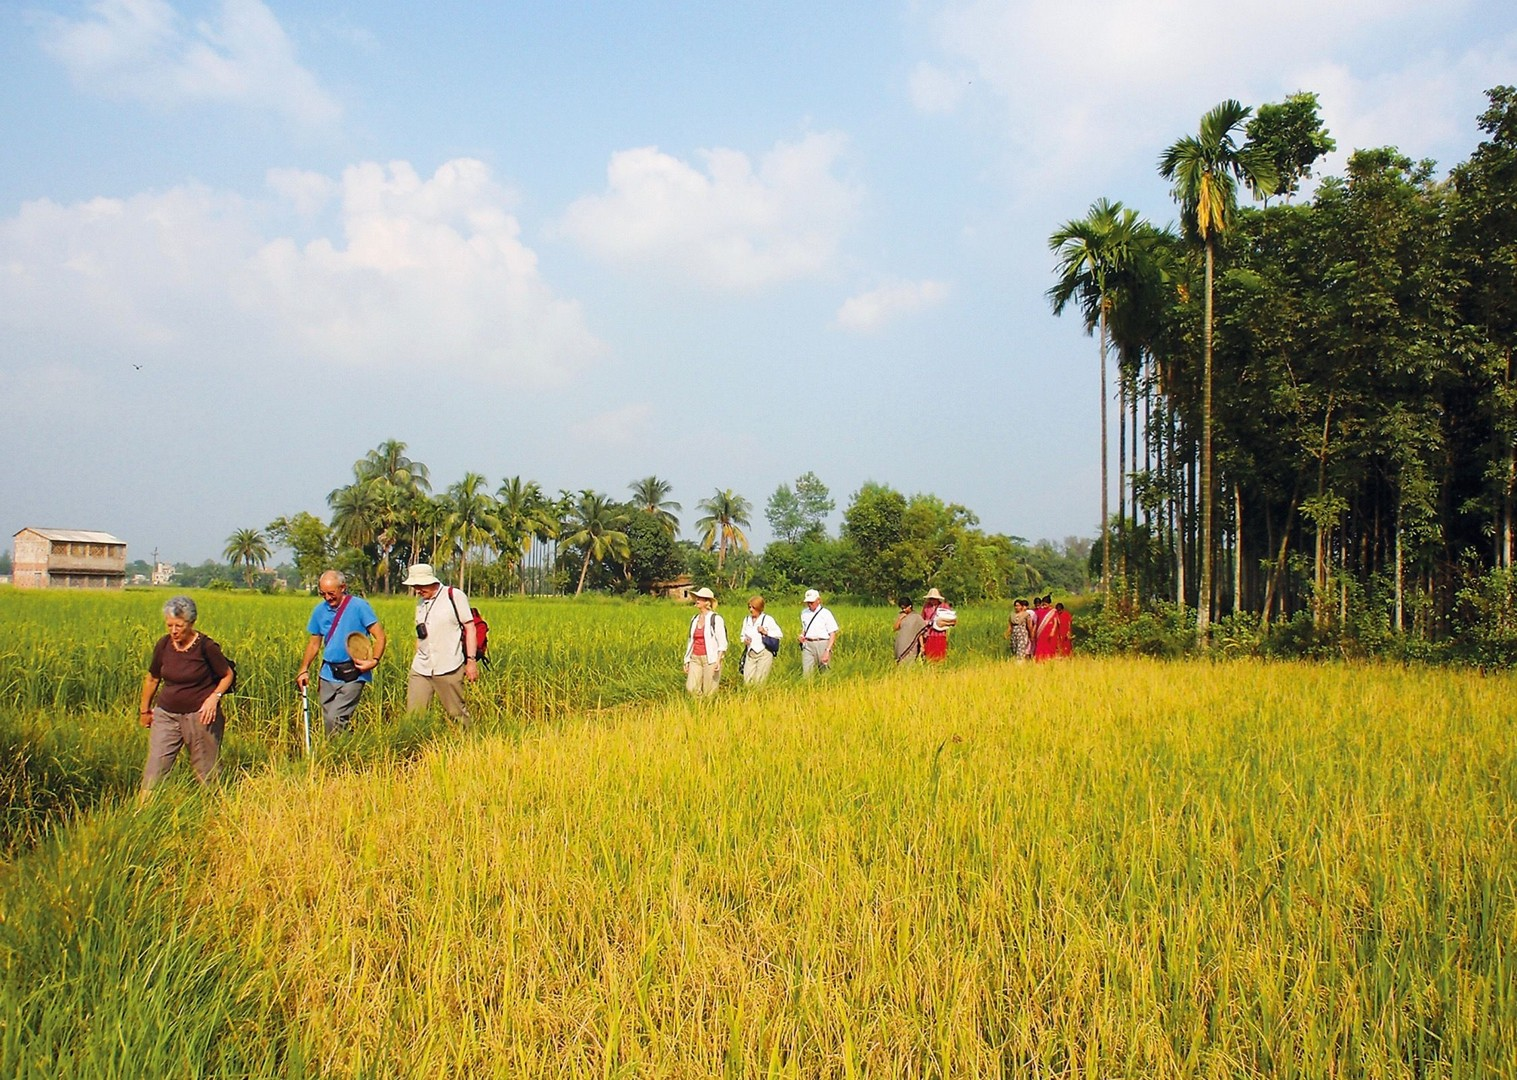 Paddy fields.jpg - Northern India - Meet the People Tours